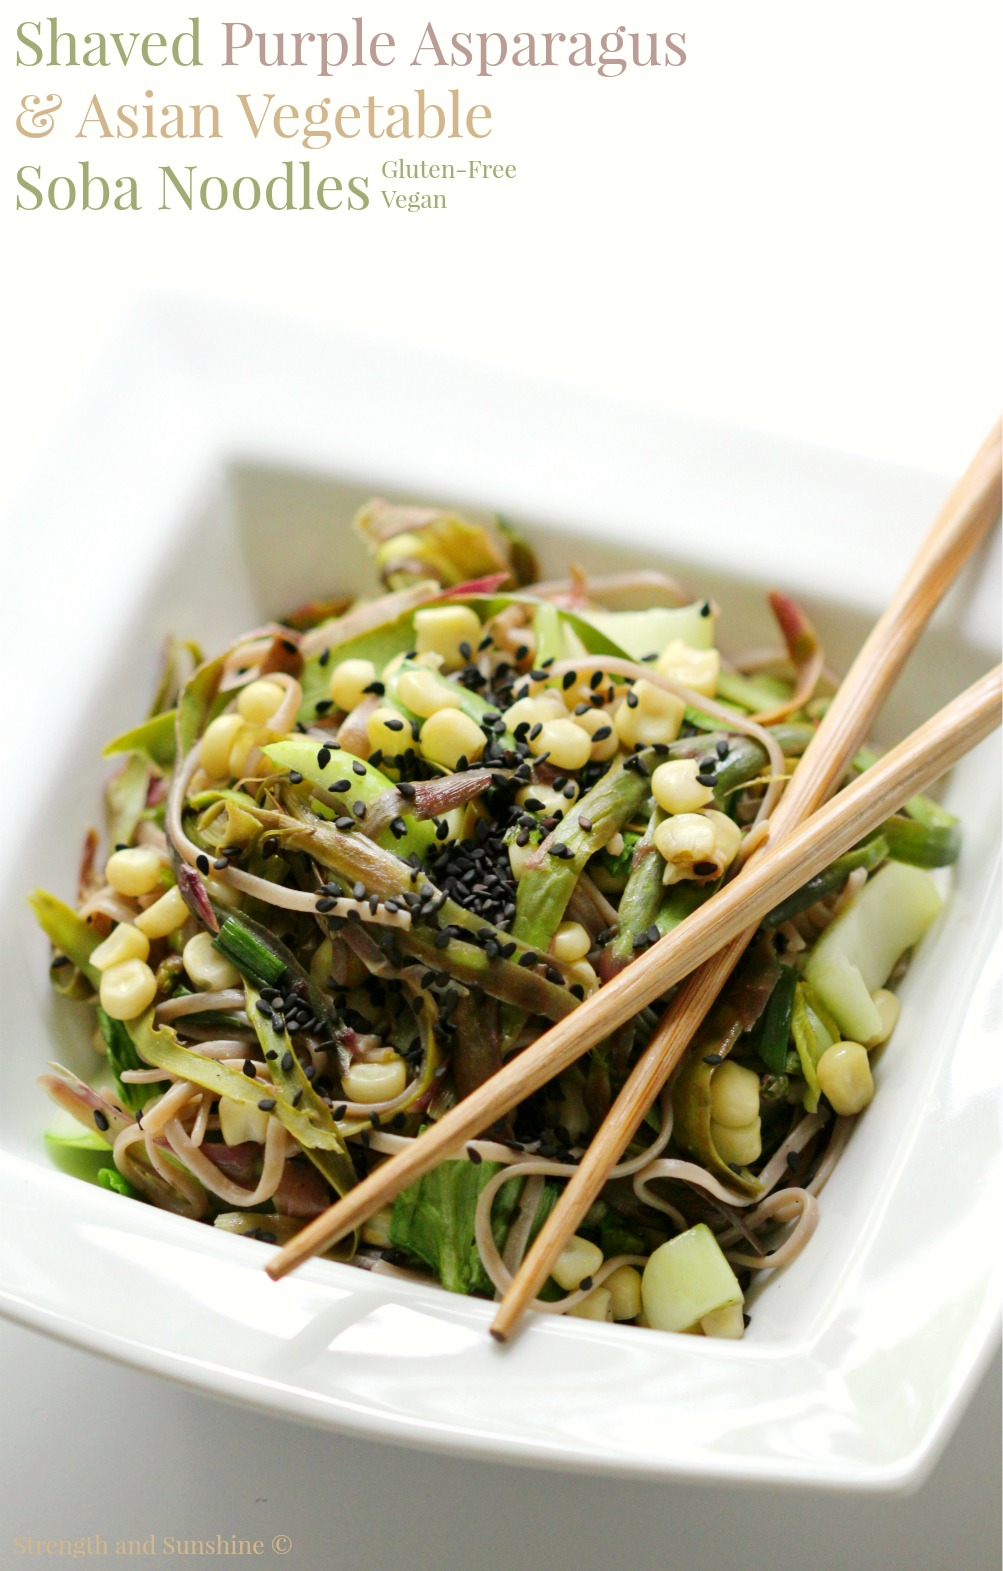 Shaved-Purple-Asparagus-Asian-Vegetable-Soba-Noodles-PM1